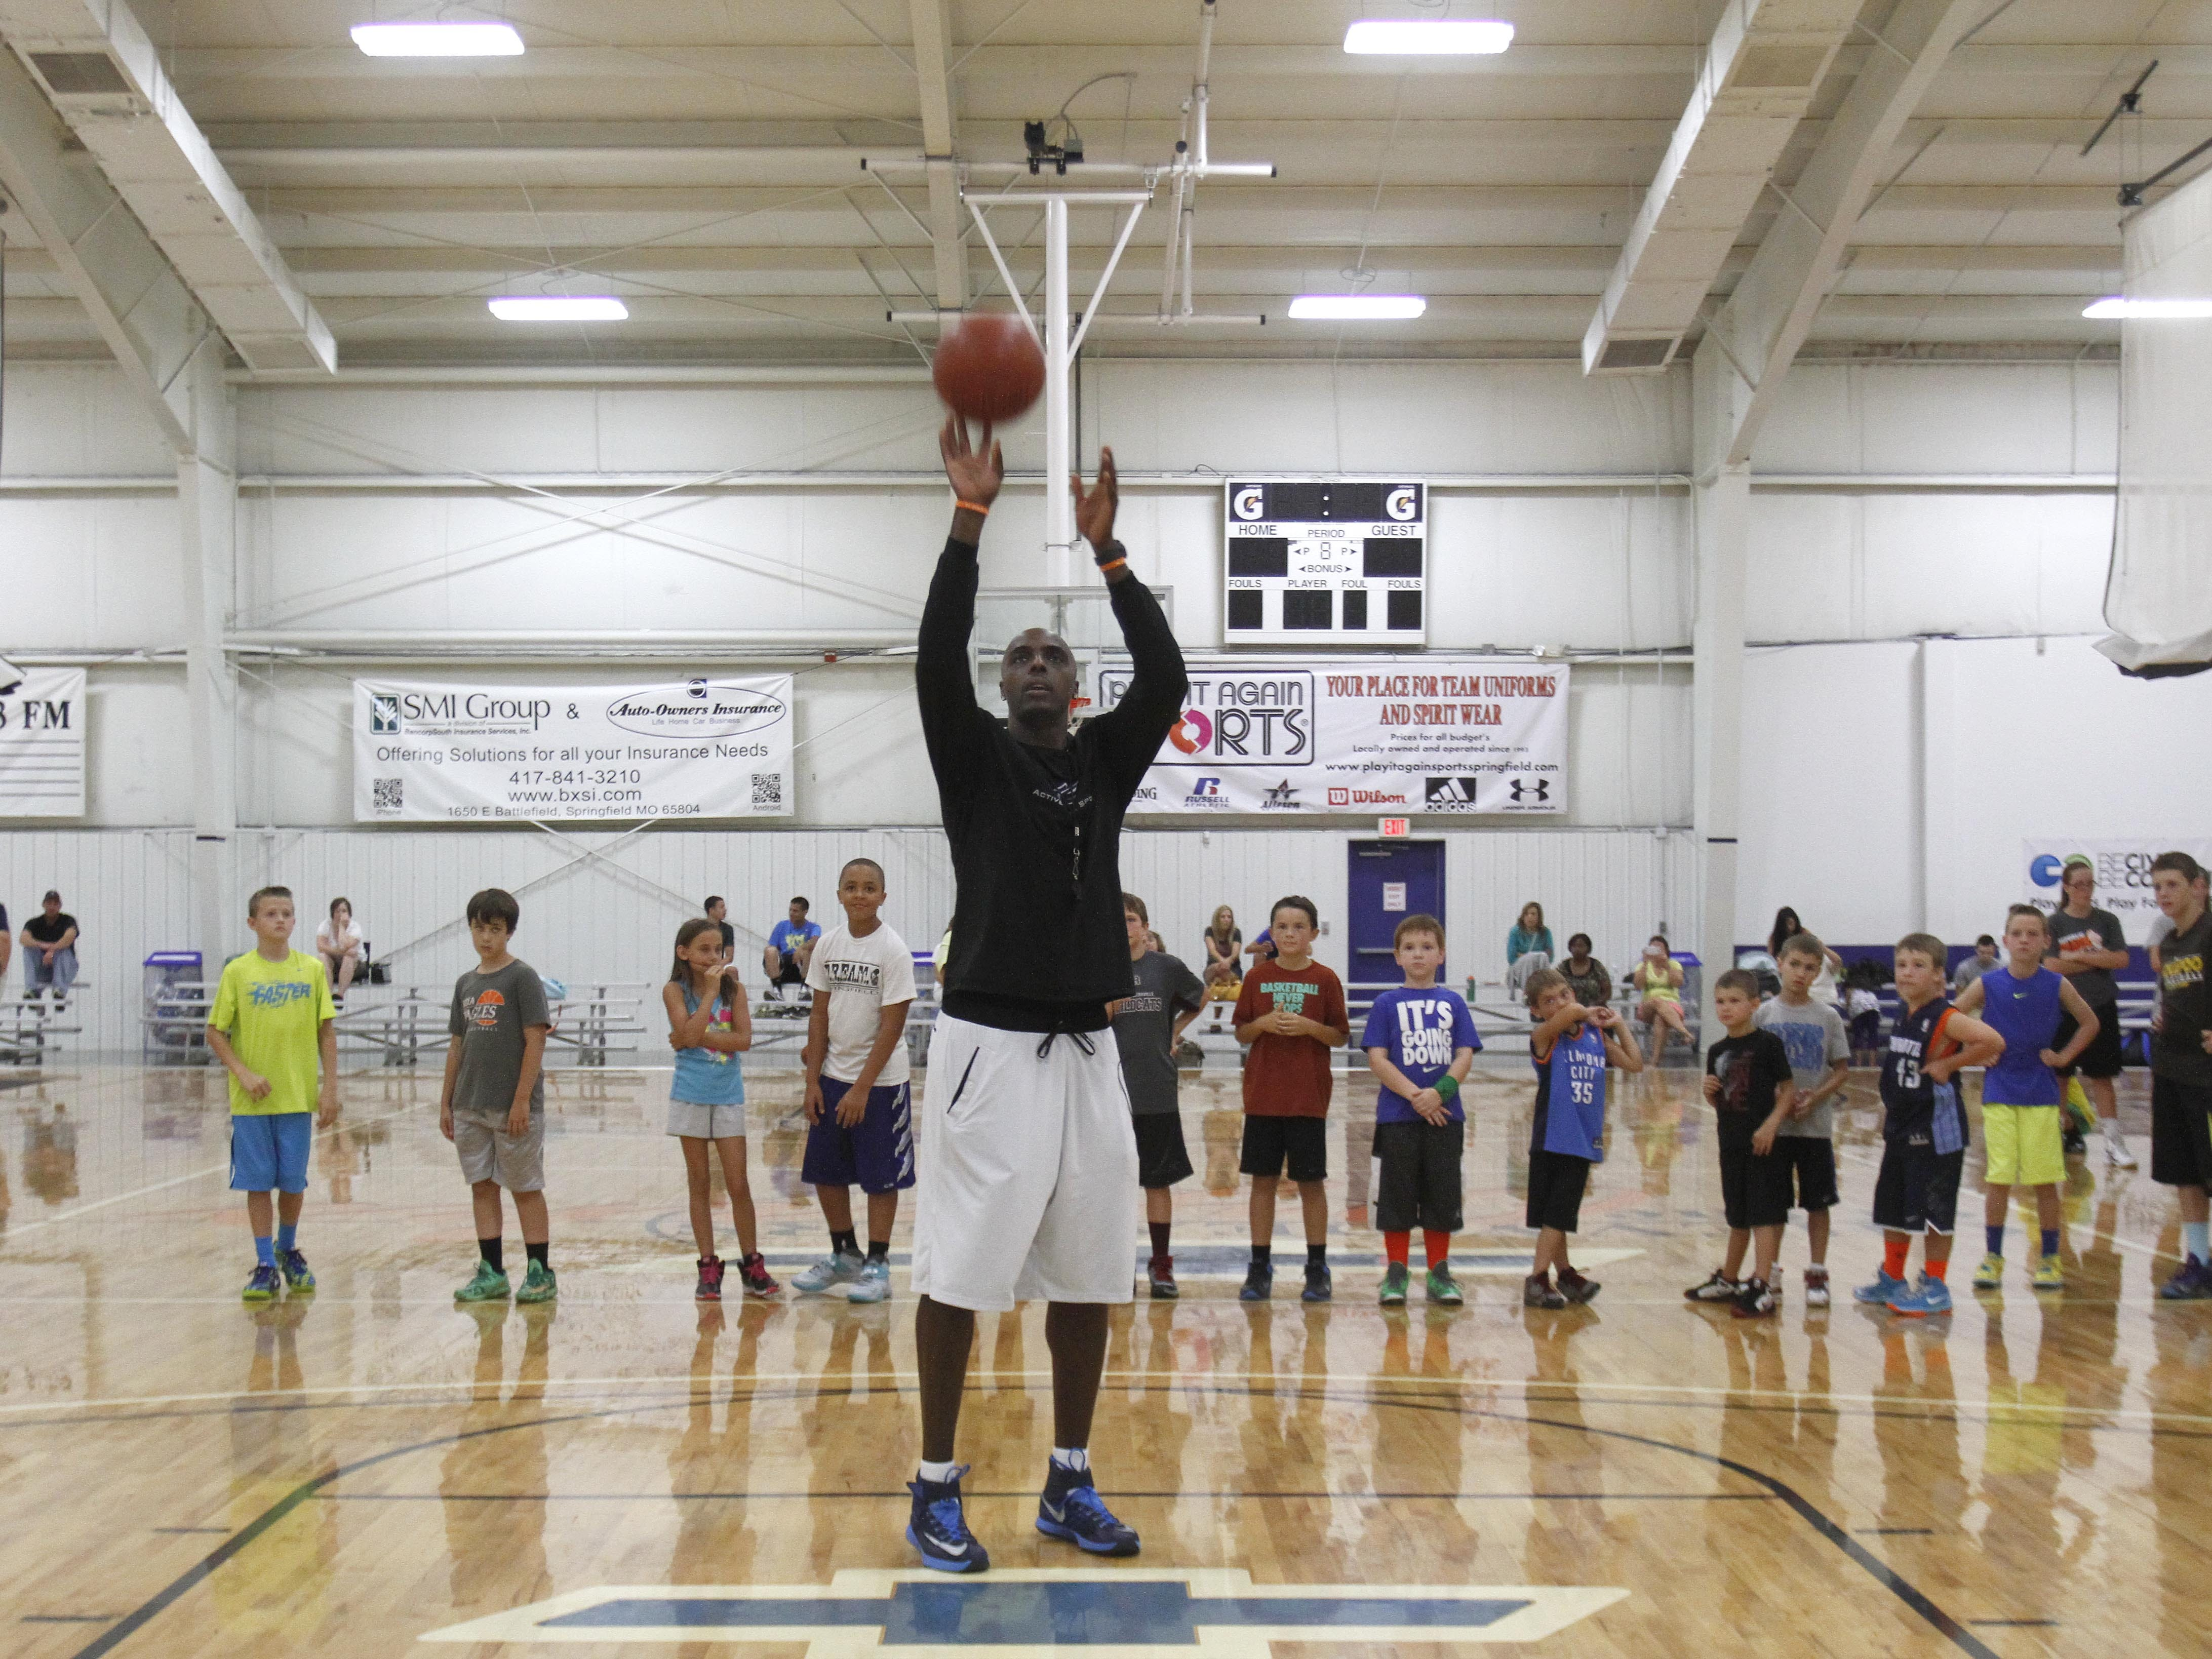 Phoenix Suns basketball player Anthony Tolliver shoots a basket as kids look on during his basketball camp at The Courts on Tuesday, July 22, 2014.